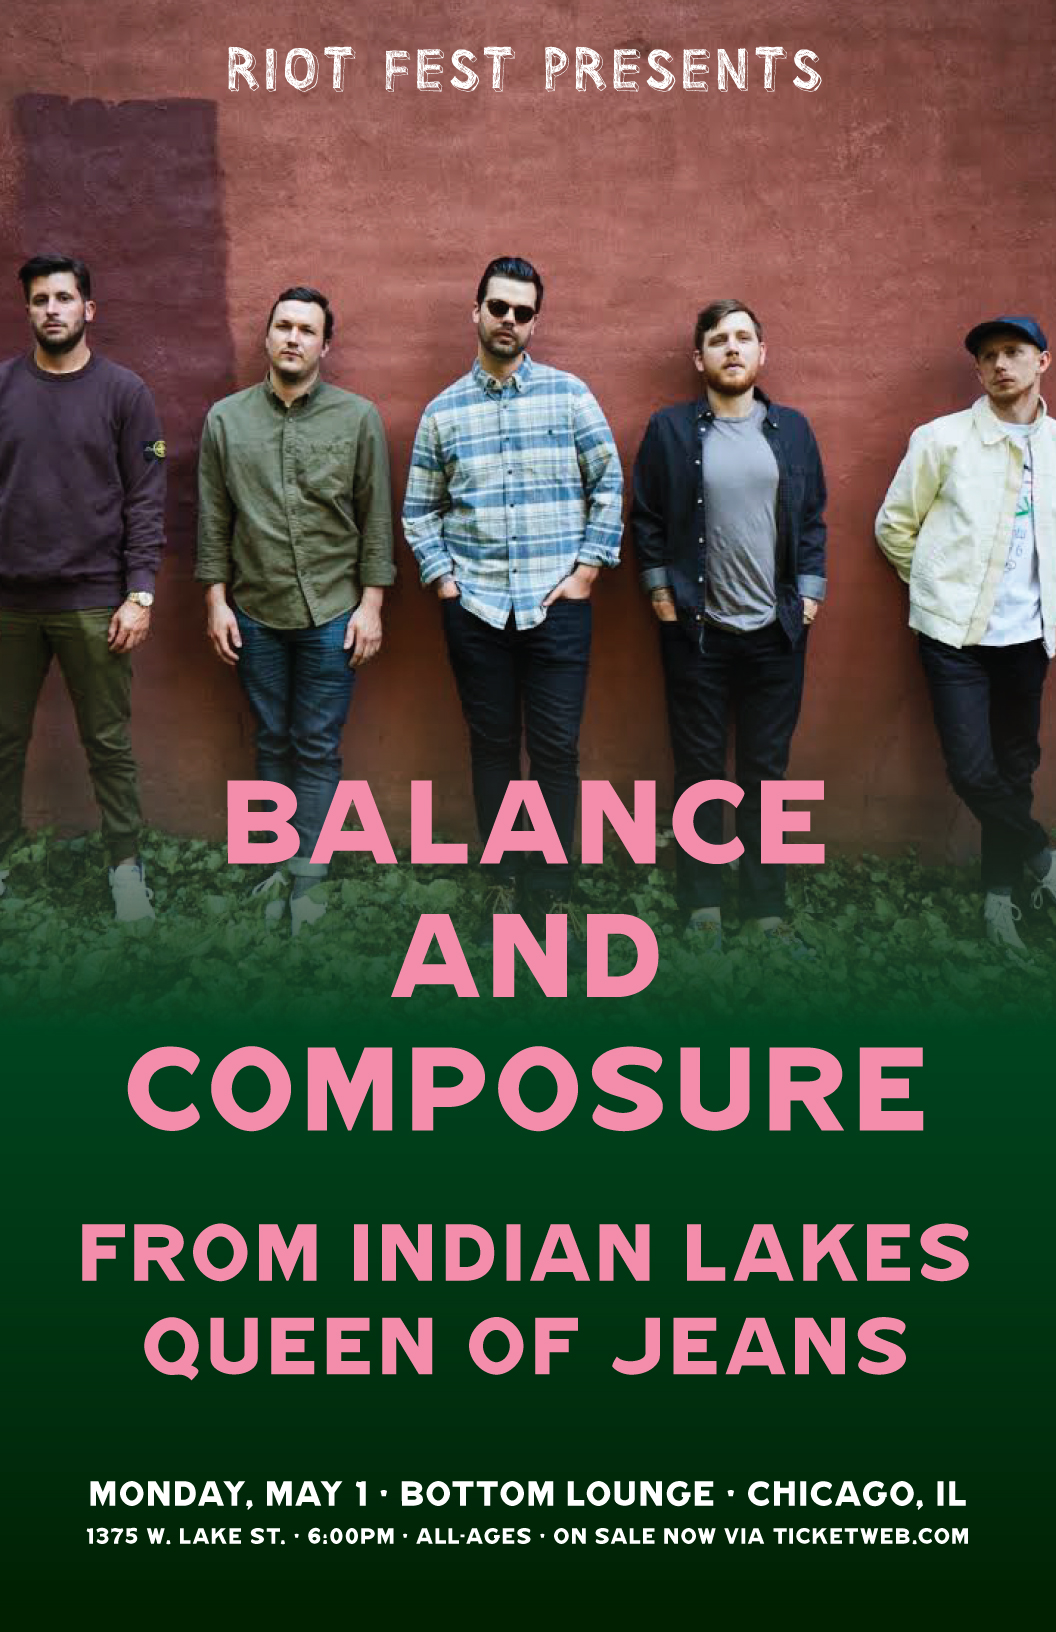 Riot Fest Presents: BALANCE AND COMPOSURE * FROM INDIAN LAKES * QUEEN OF JEANS